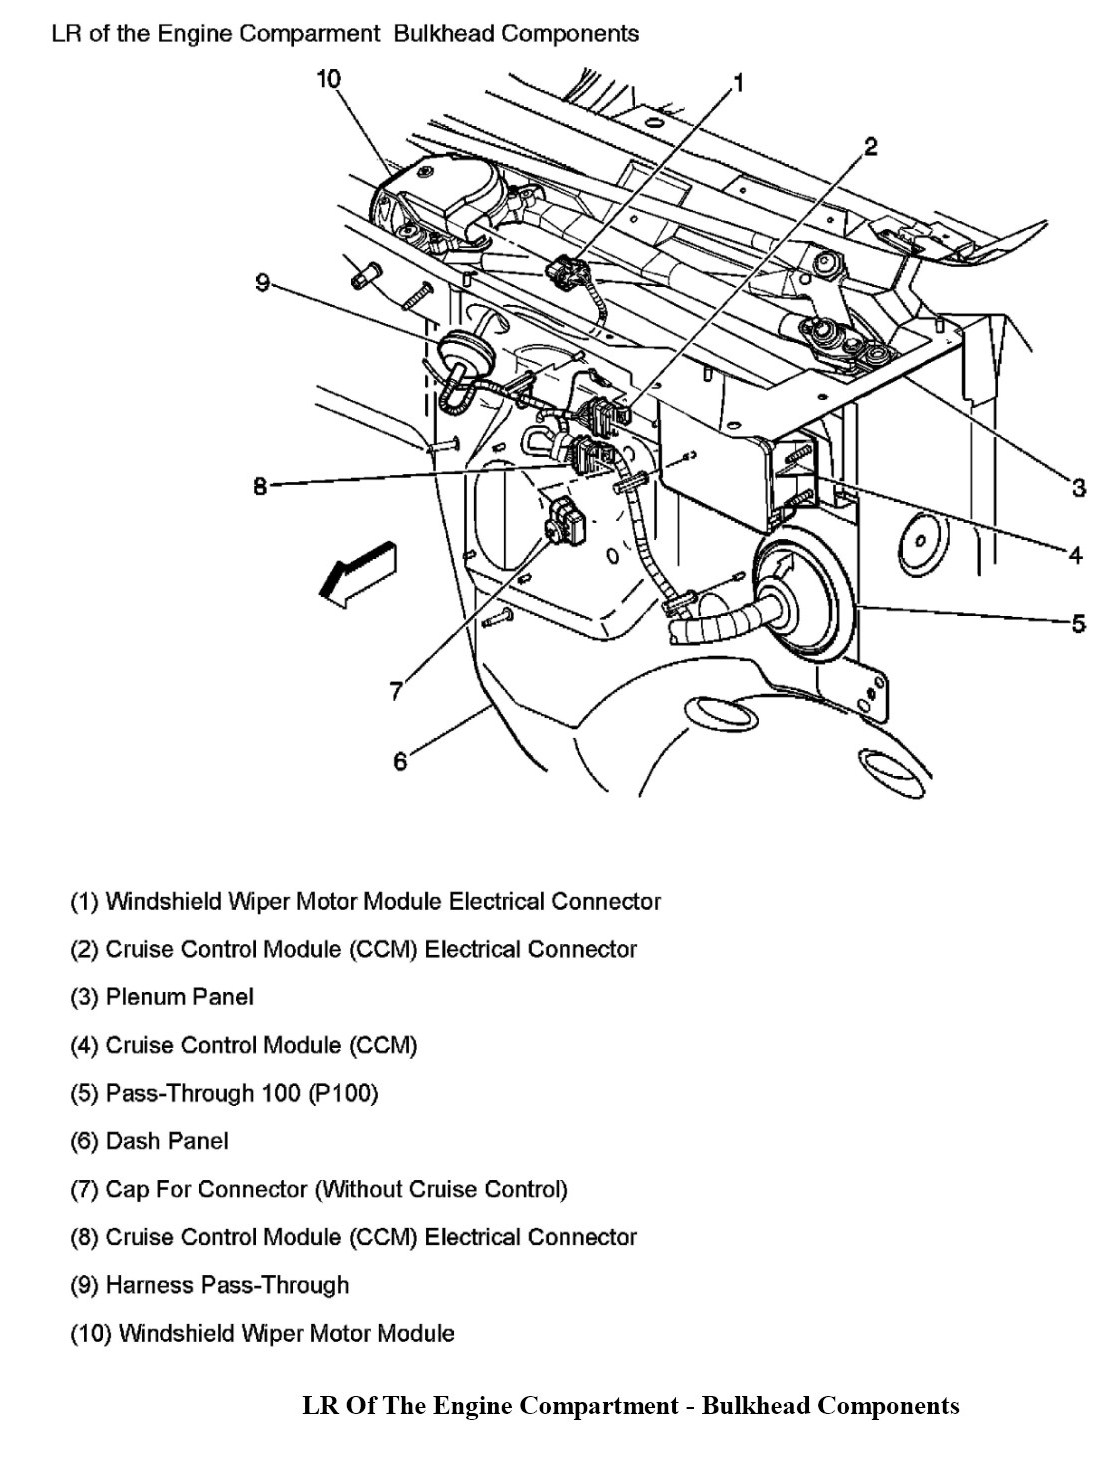 I Need To Replace My Wiper Relay Switch On A 03 Silverado What Windshield Motor Wiring Diagram Here Are Some Wire Diagrams As You Can See The Only Is For Washer Pumpnot Much Involved In This Systemthe And